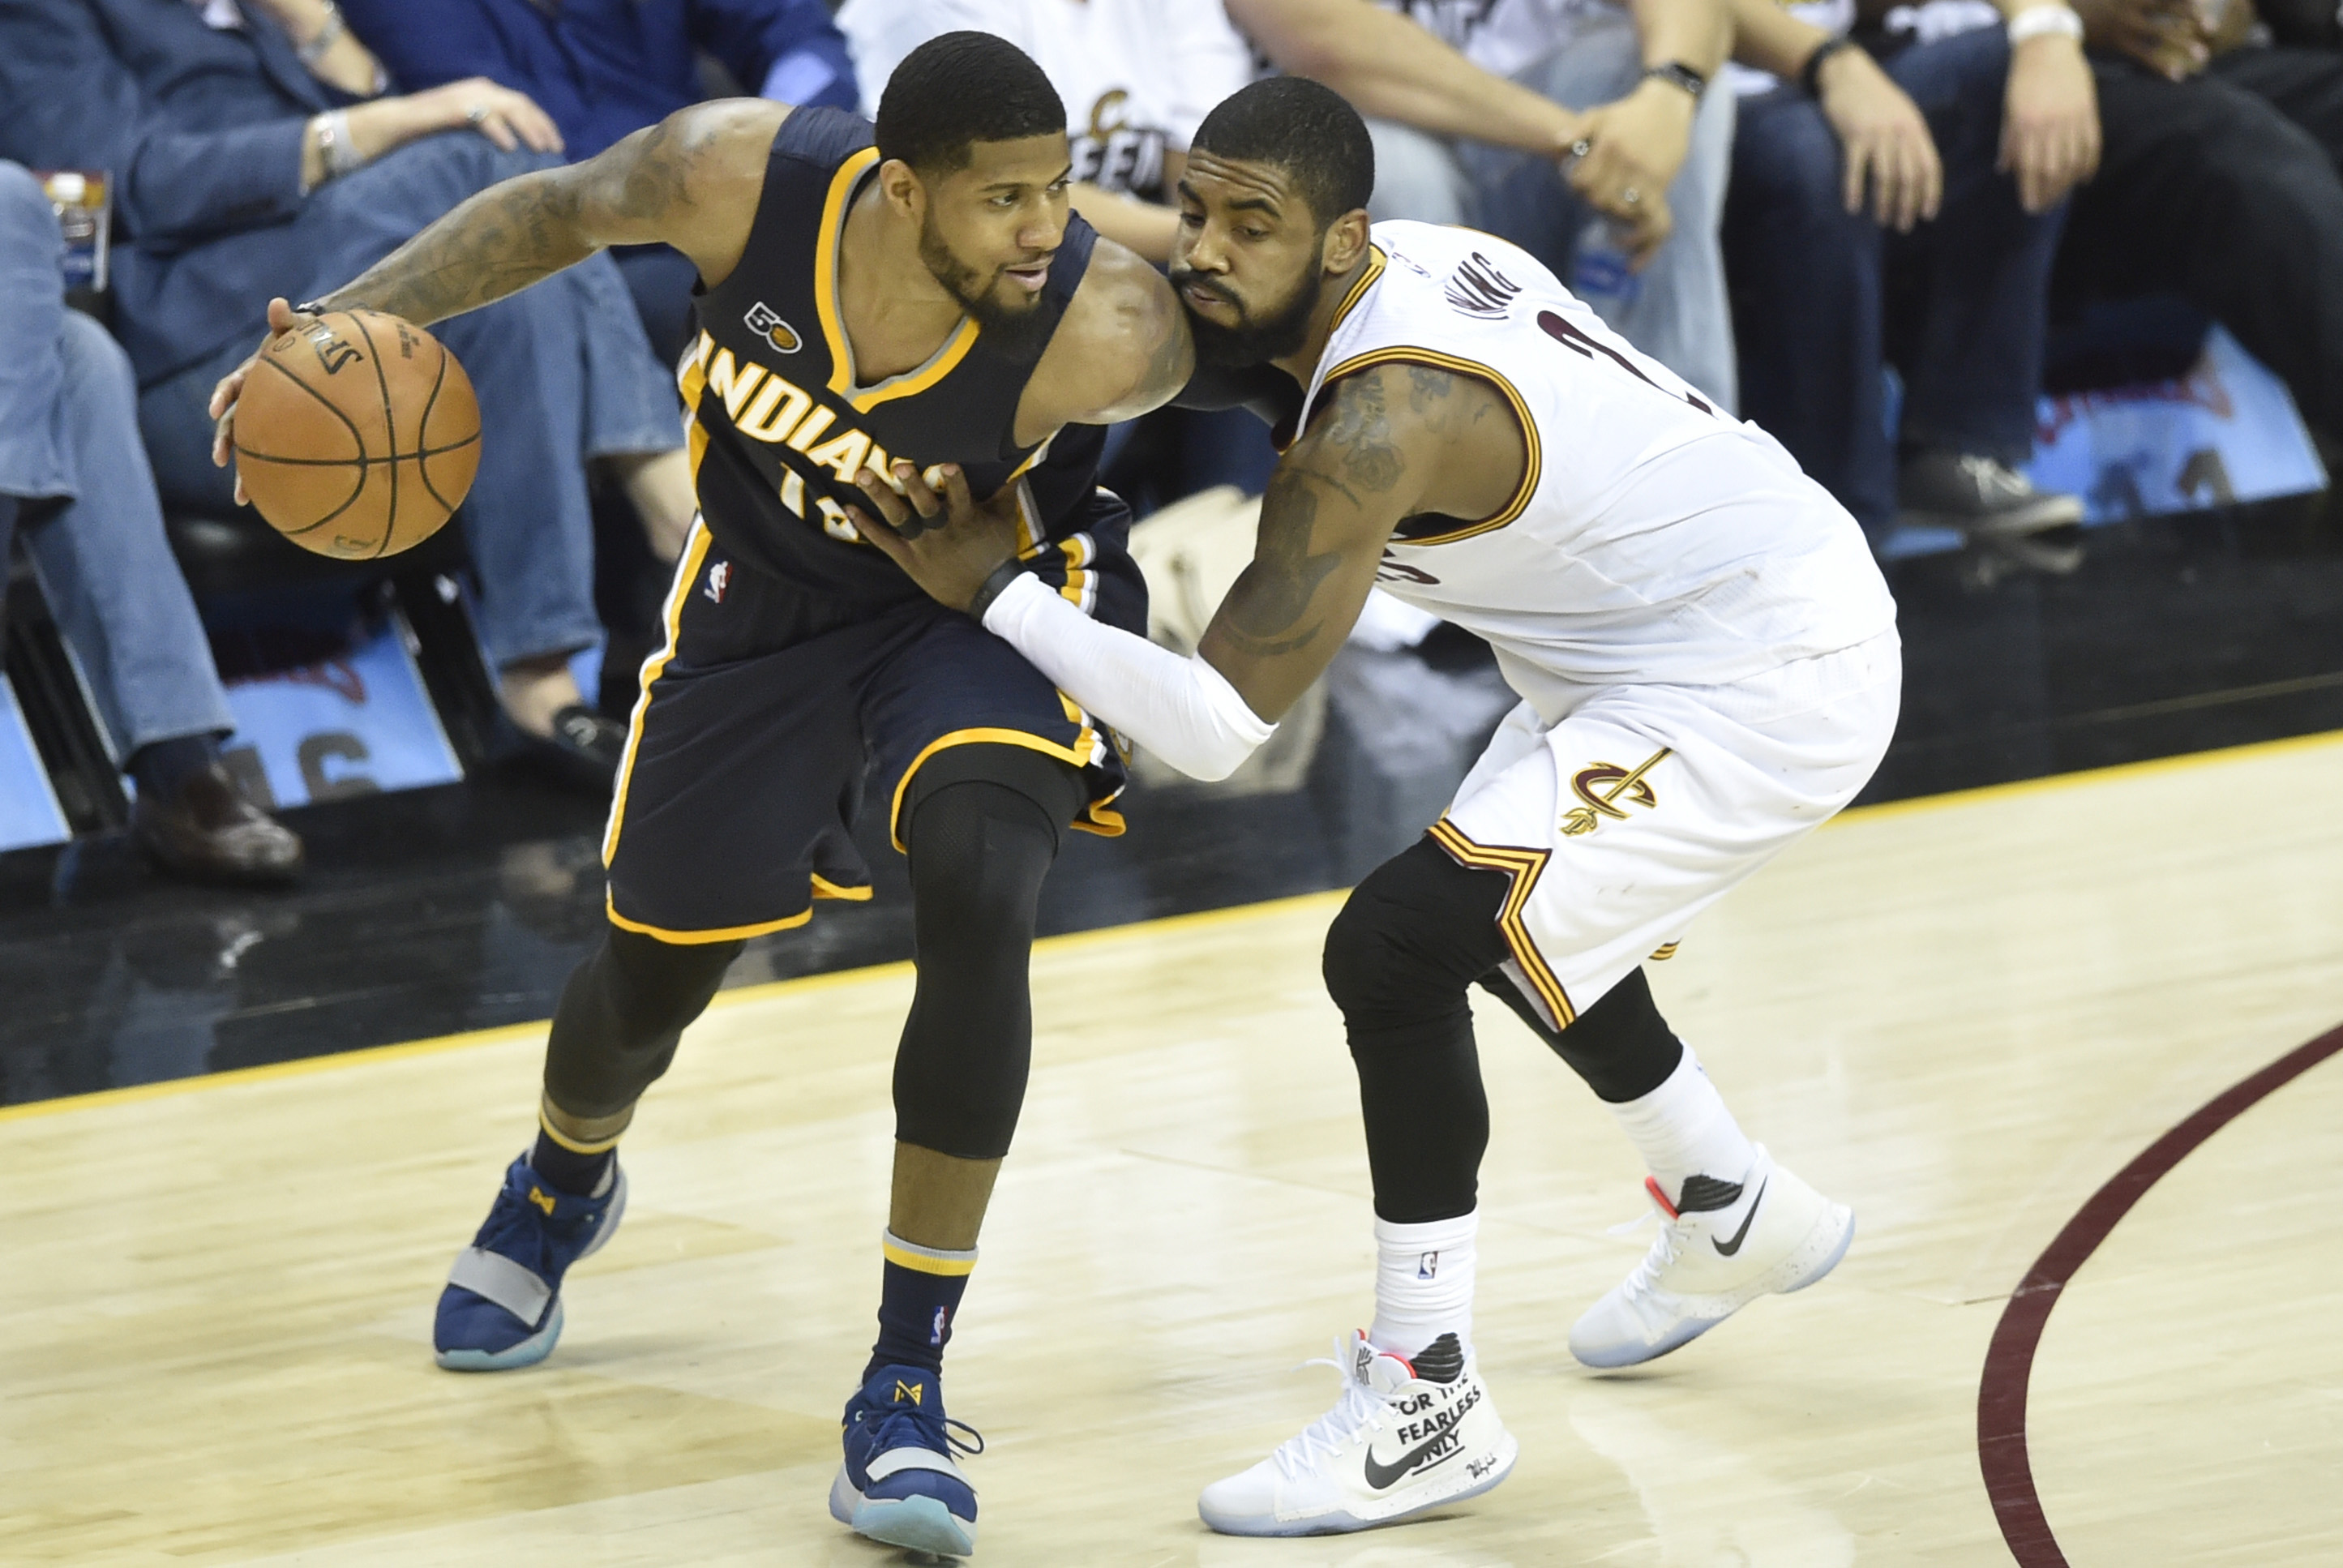 10014256-nba-playoffs-indiana-pacers-at-cleveland-cavaliers-2